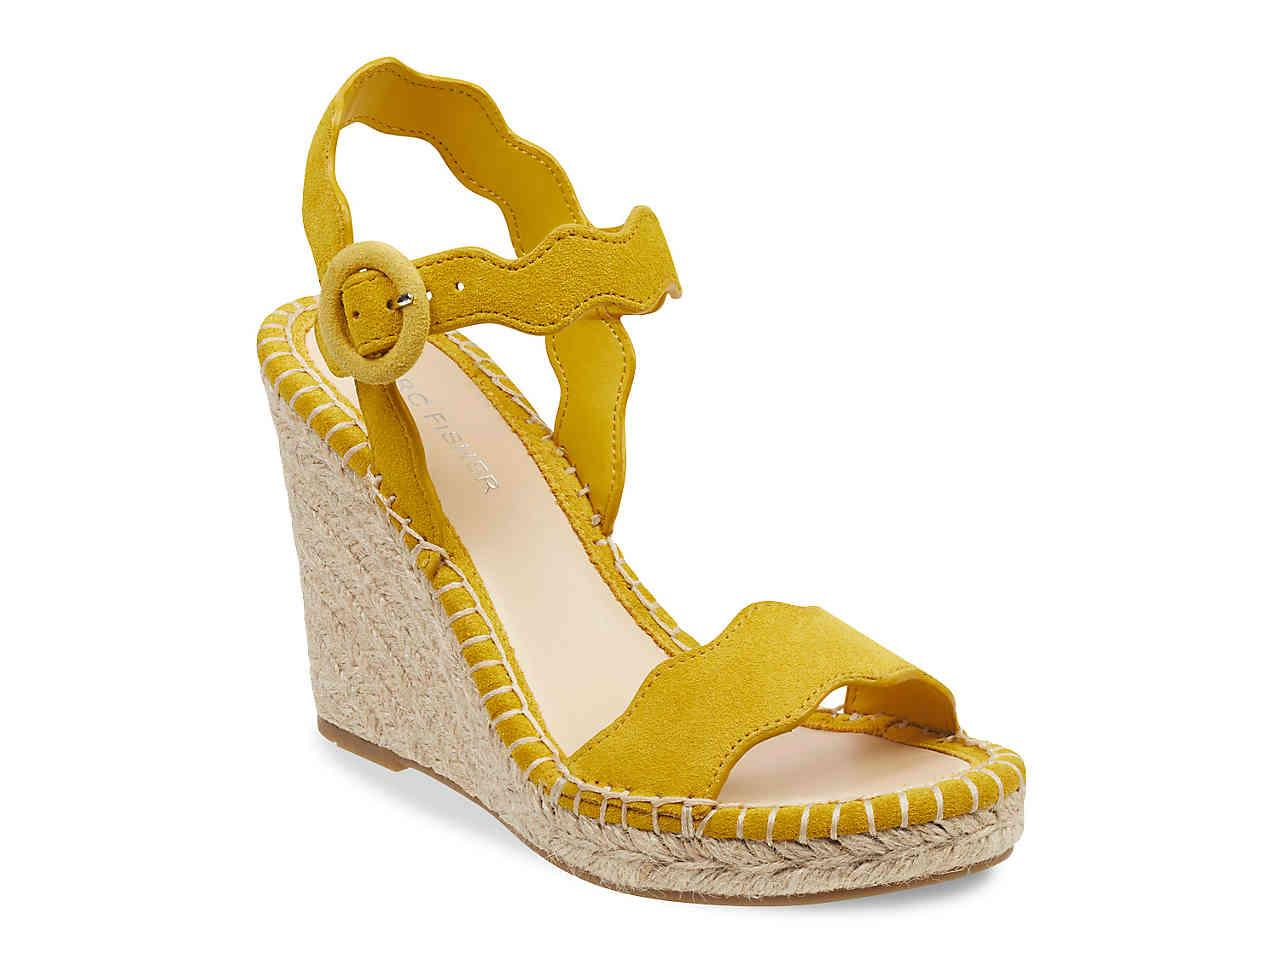 88ce1f89533 Lyst - Marc Fisher Kai Espadrille Wedge Sandal in Yellow